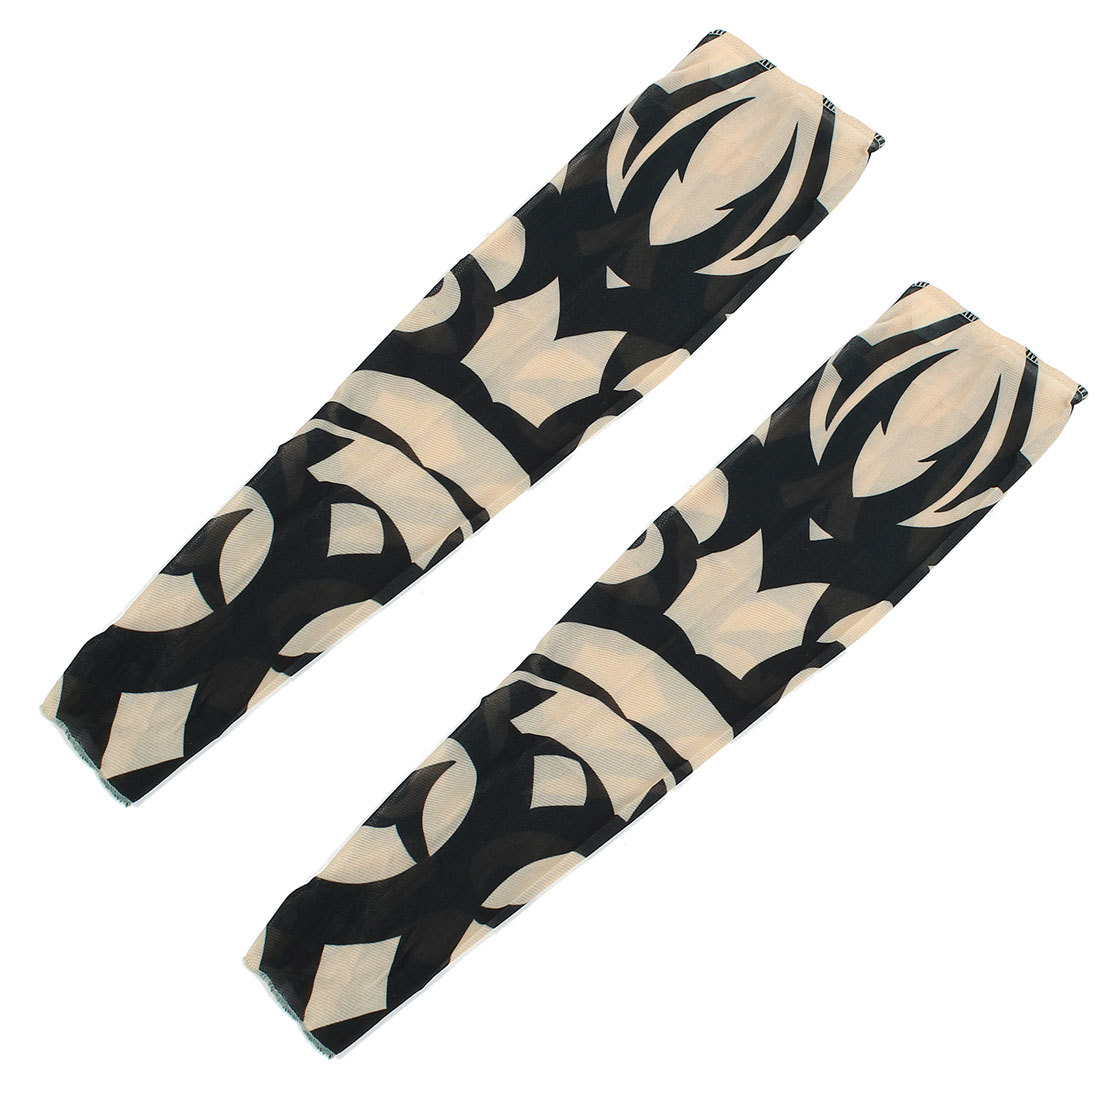 2Pcs Black Beige Breathable Strecthy Fake Tattoo Cycling Sports Arm Sleeve